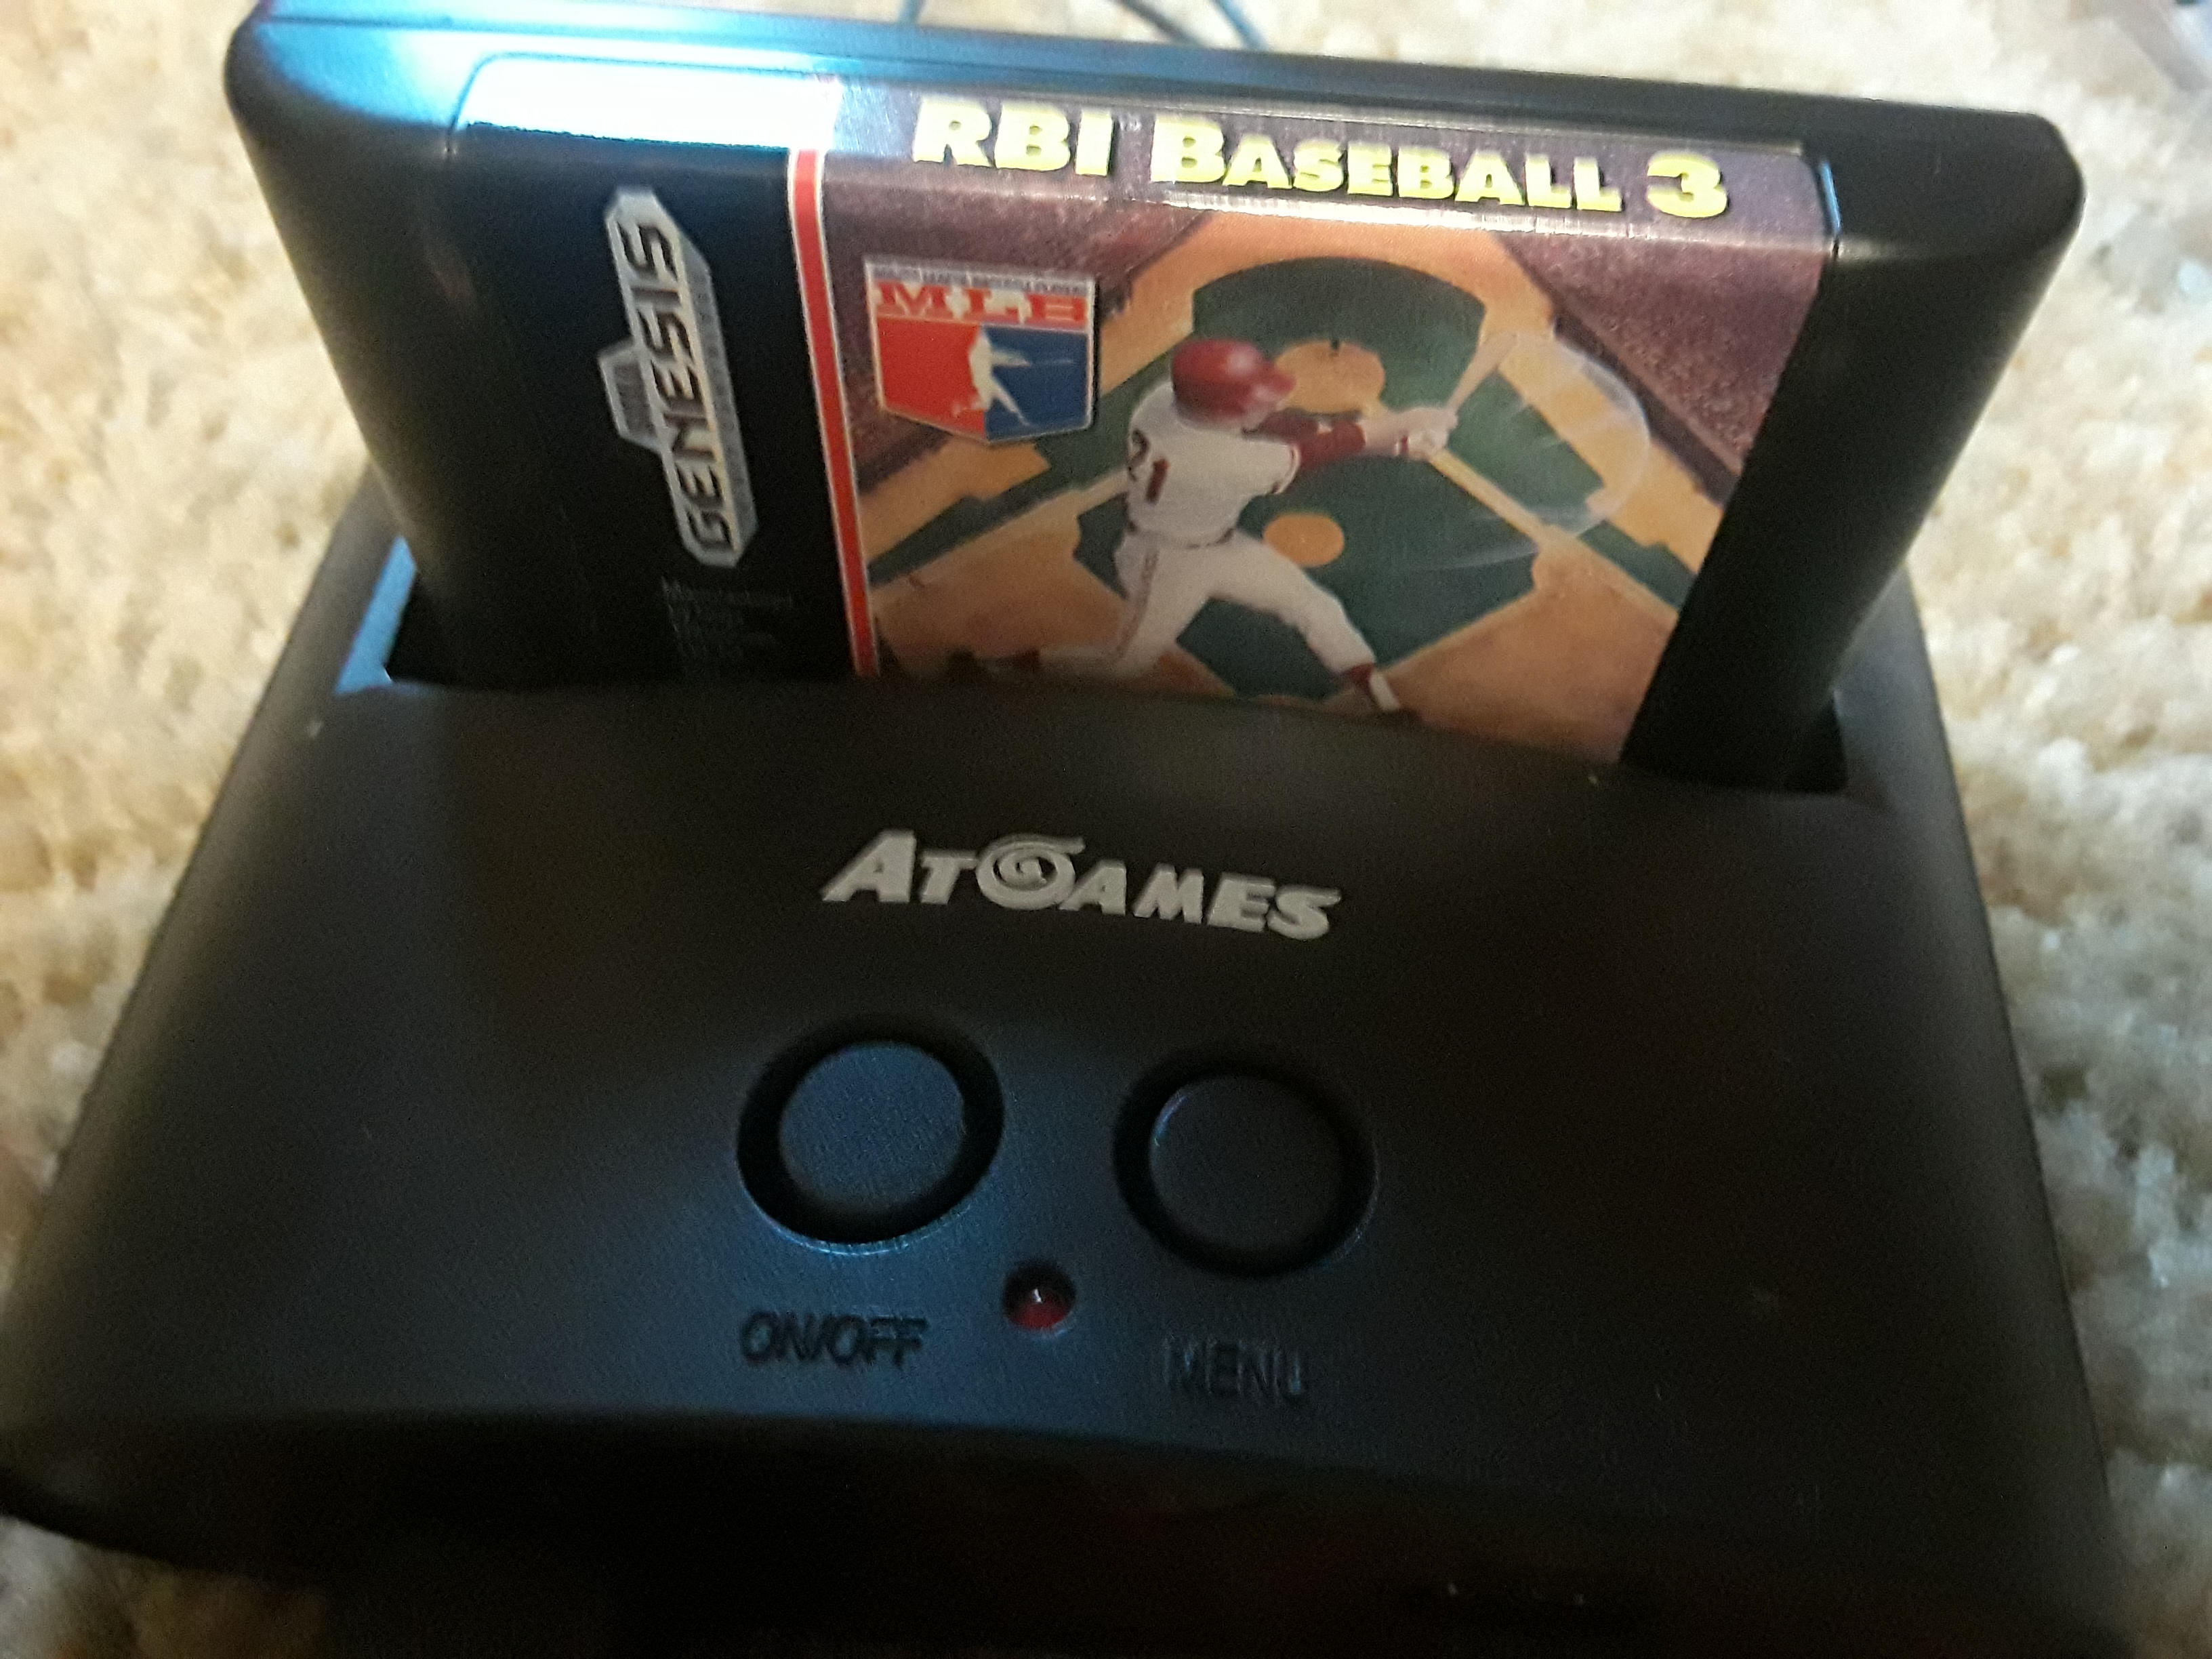 JML101582: RBI Baseball 3 [Point Difference] (Sega Genesis / MegaDrive Emulated) 4 points on 2018-07-19 20:02:19